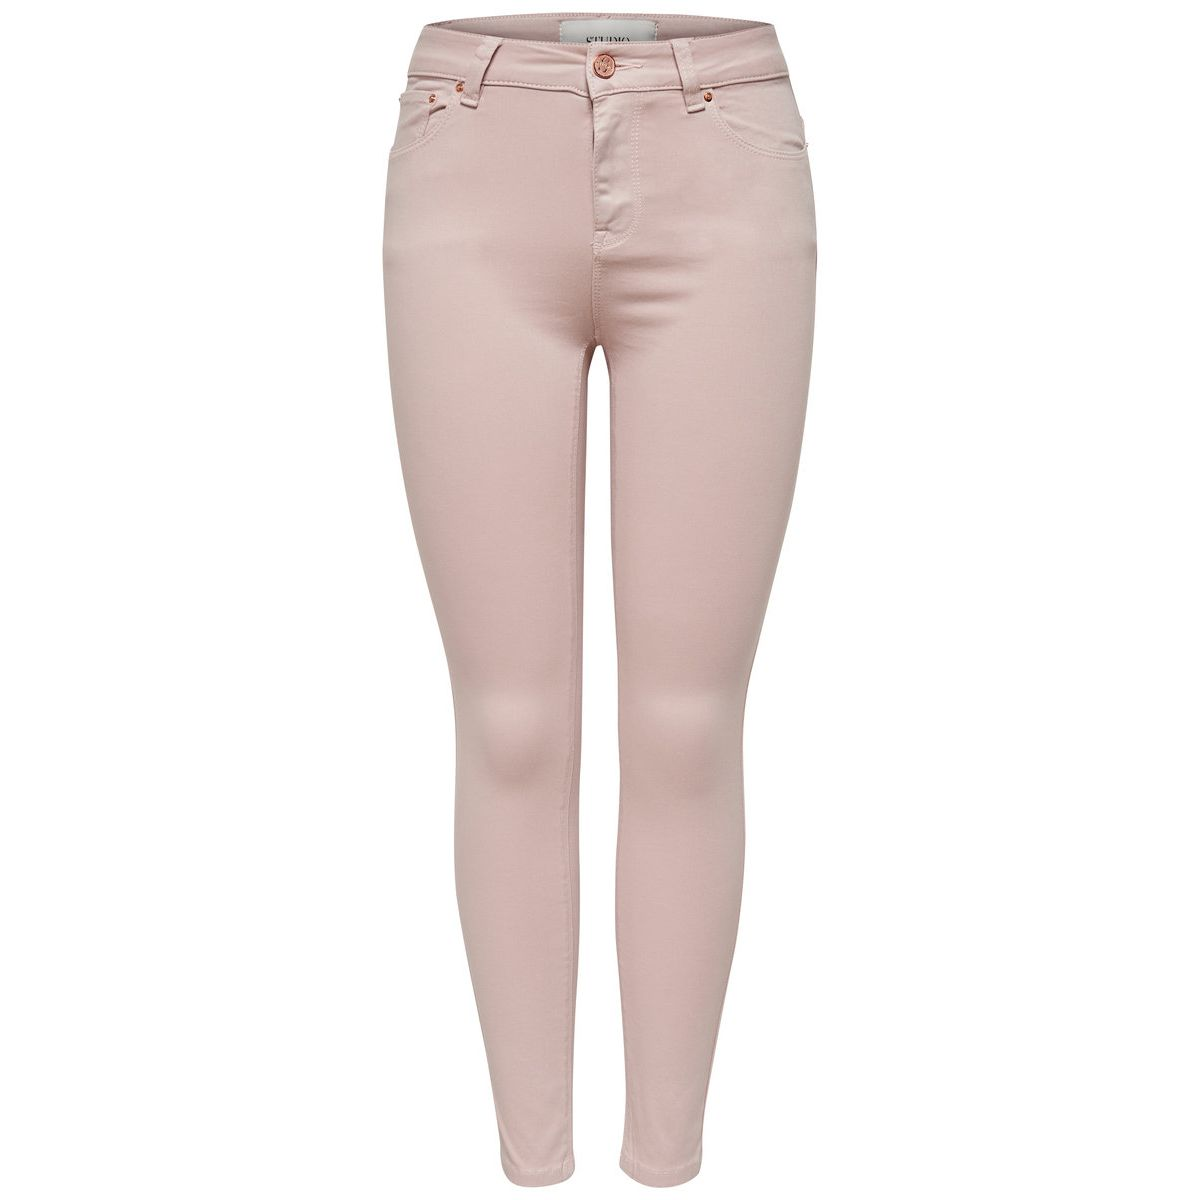 Only Studio mw Ankle Skinny Fit Jeans